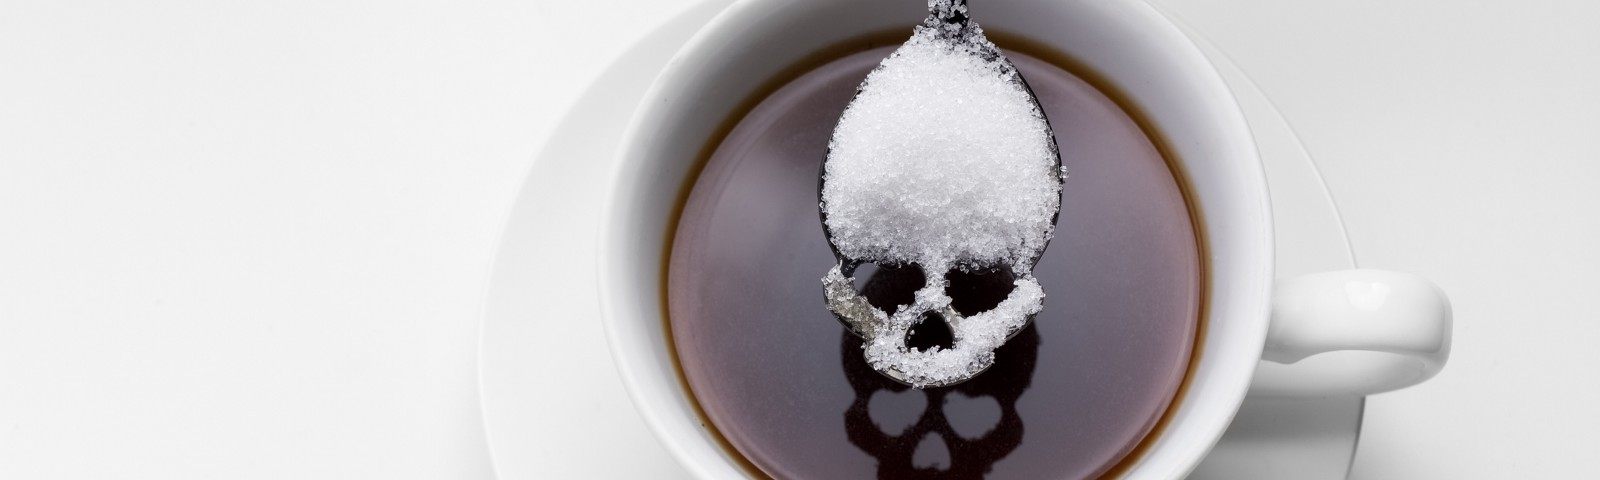 Coffee with a spoonful of sugar, the sugar shaped to look like a skull.